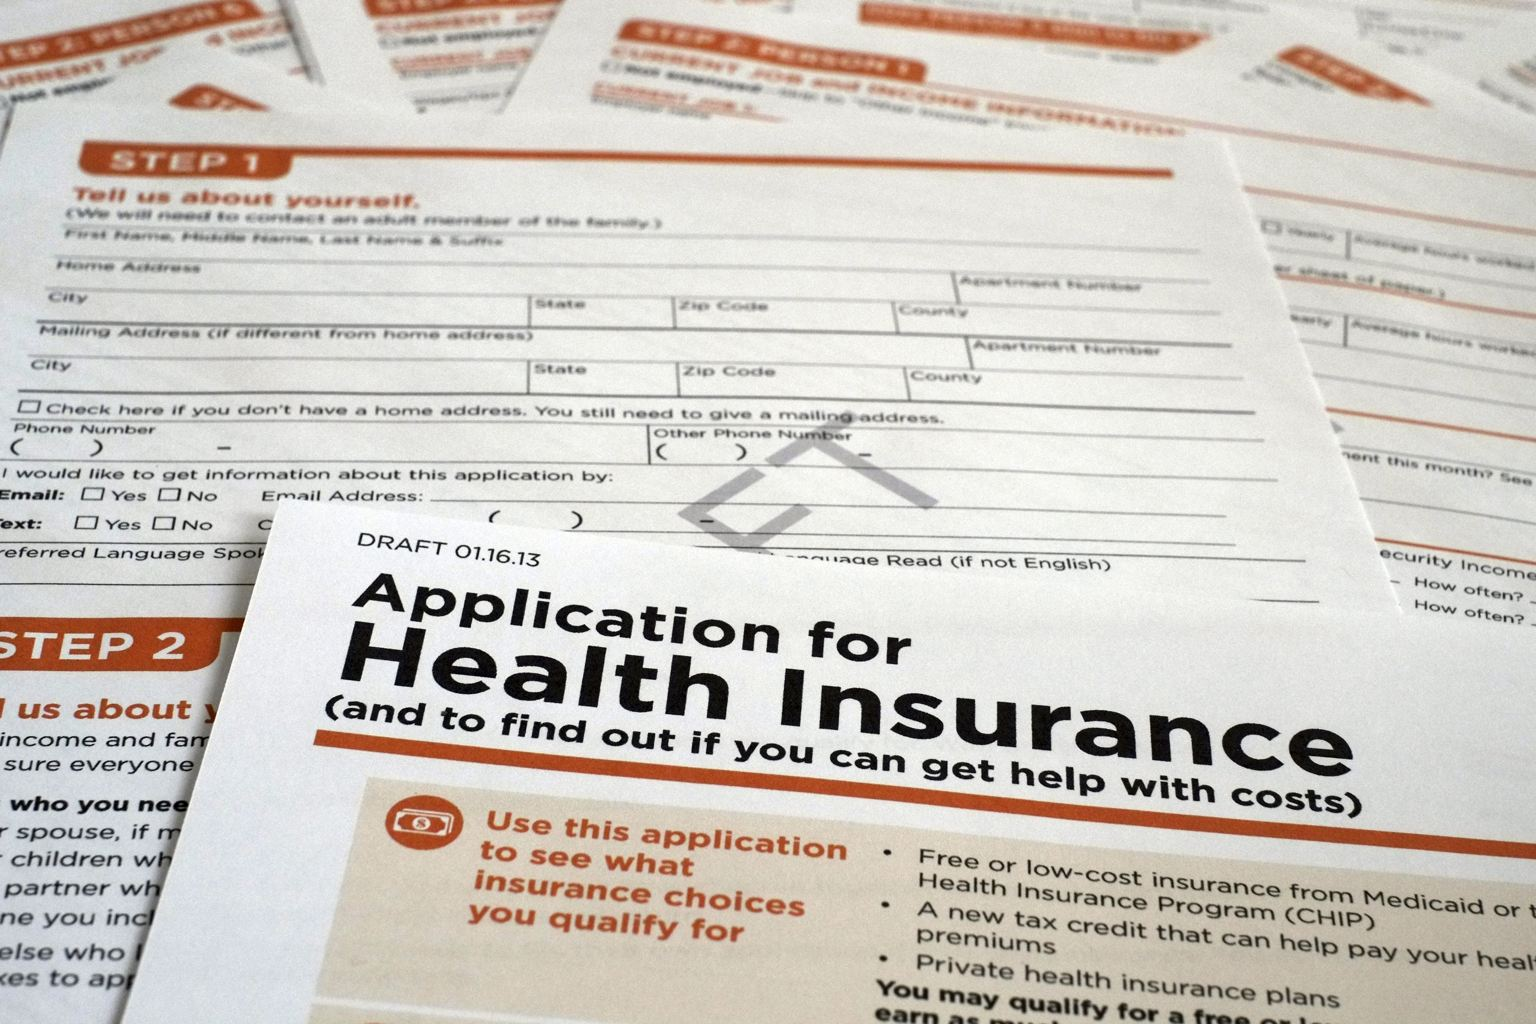 Health insurance application process under Obamacare won't be easy